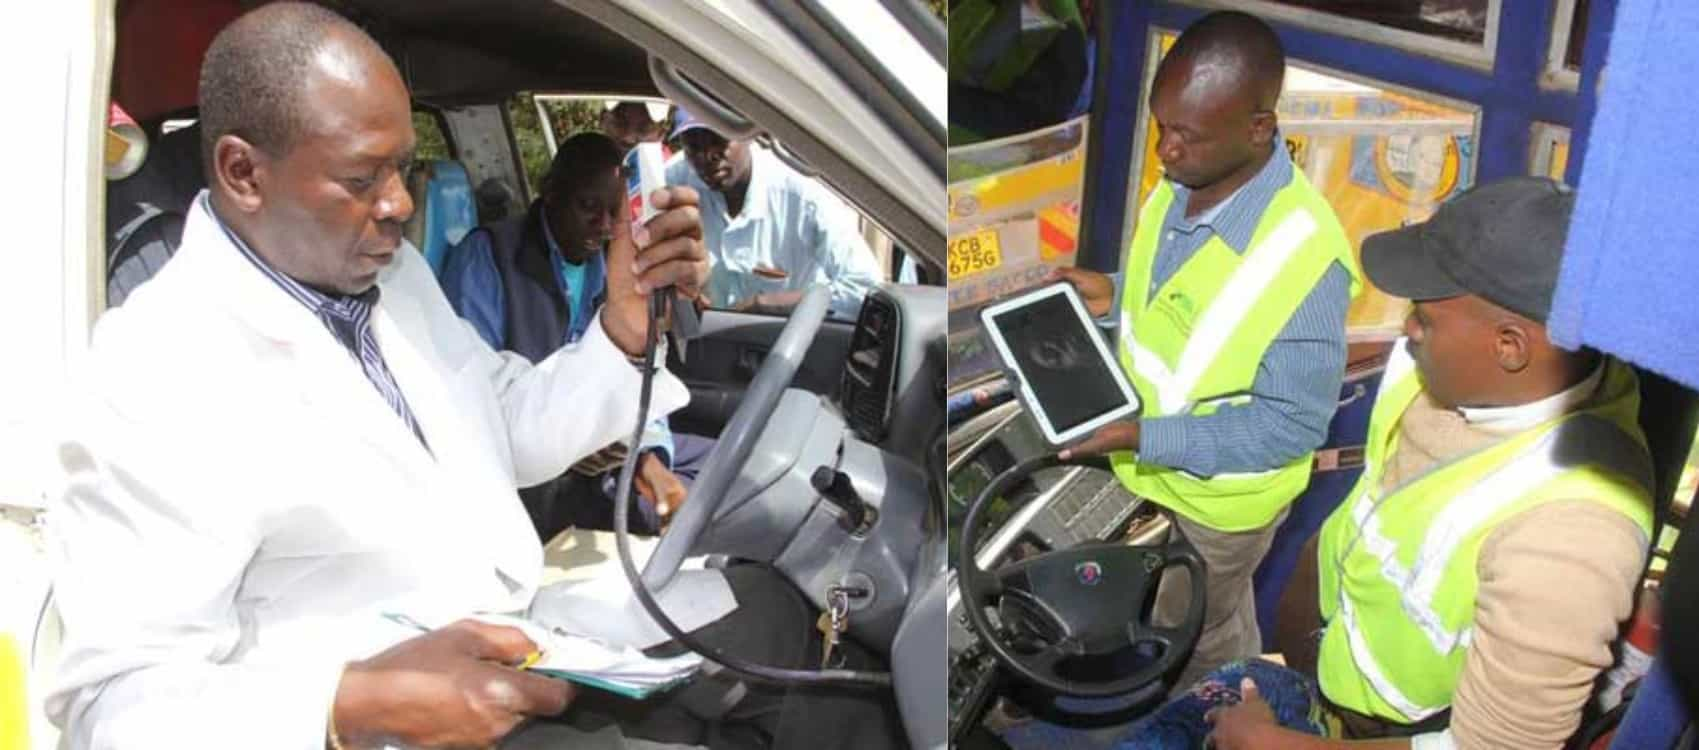 NTSA - All private vehicles must be inspected every 2 years